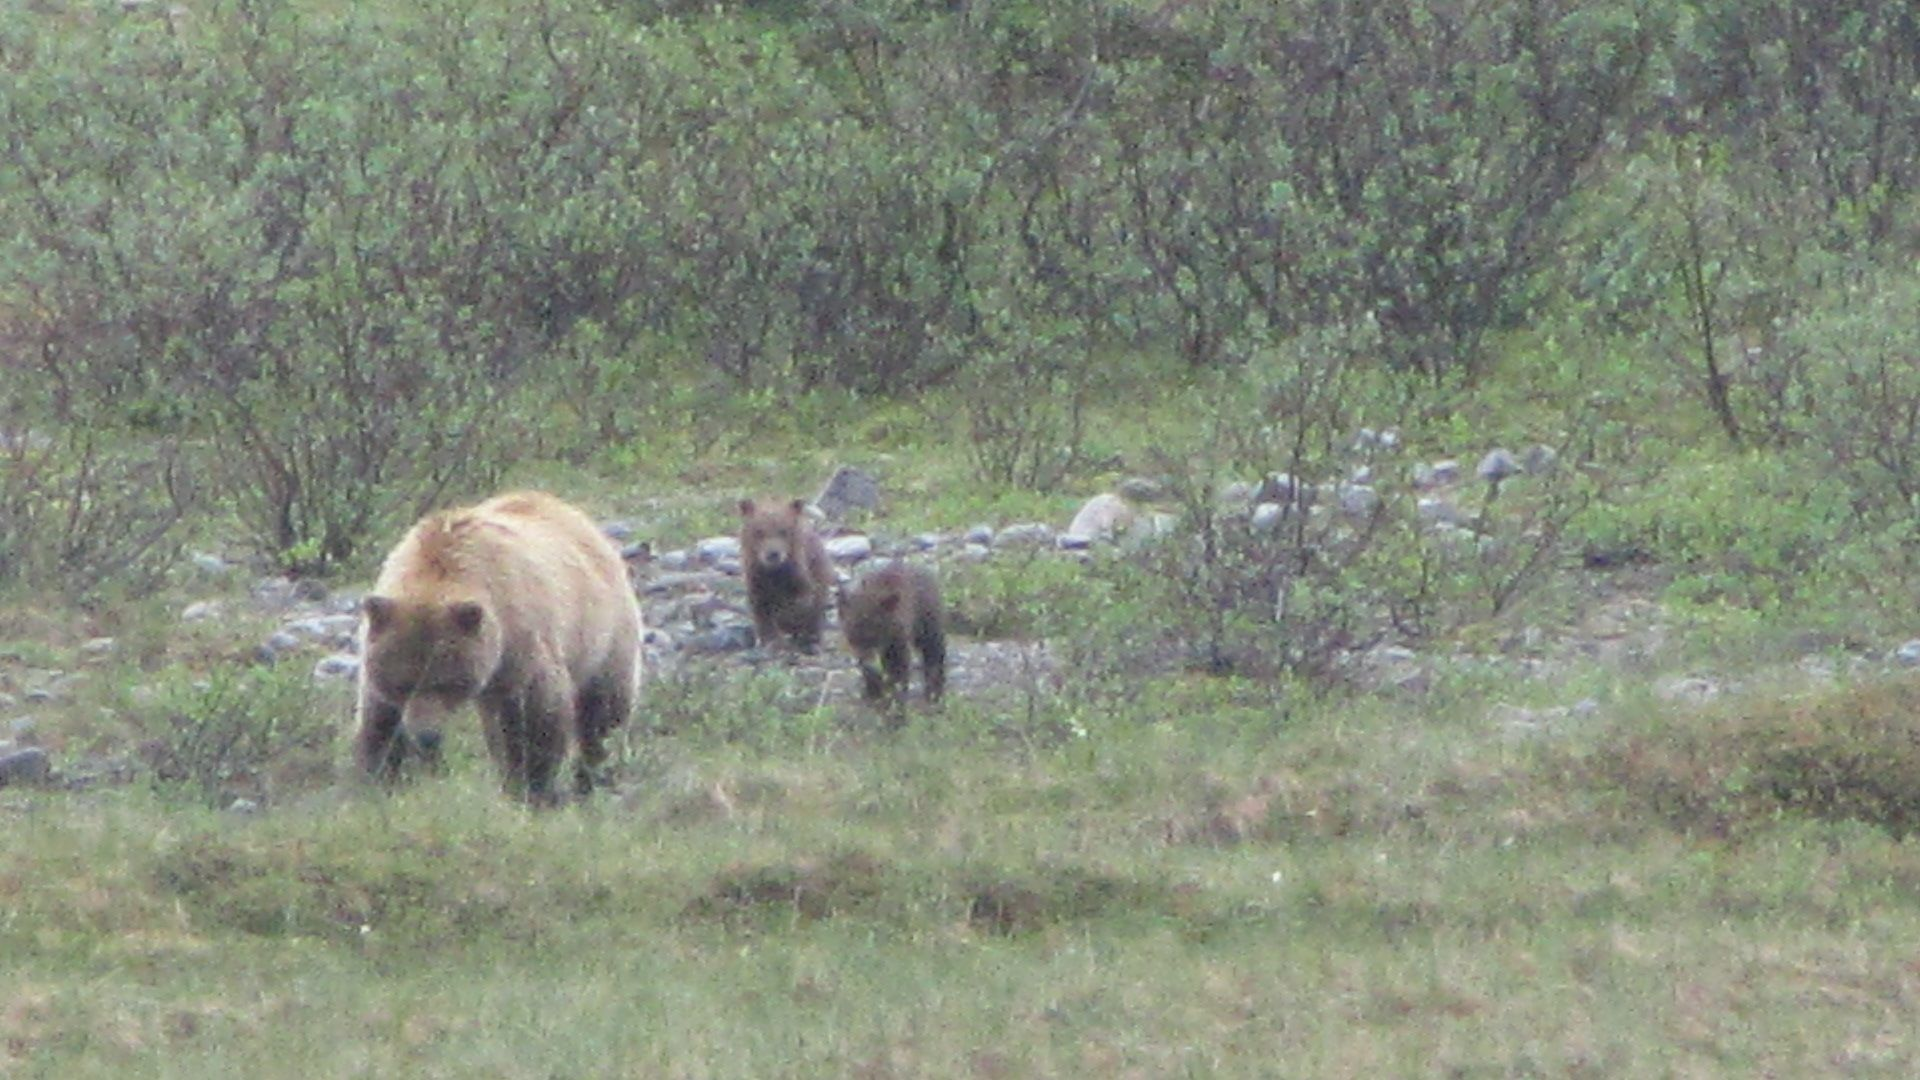 Denali Nat Pk - Oh I see, showing off with TWO cubs are we?  Right, get me 'Gentle Ben' we need to sire triplets